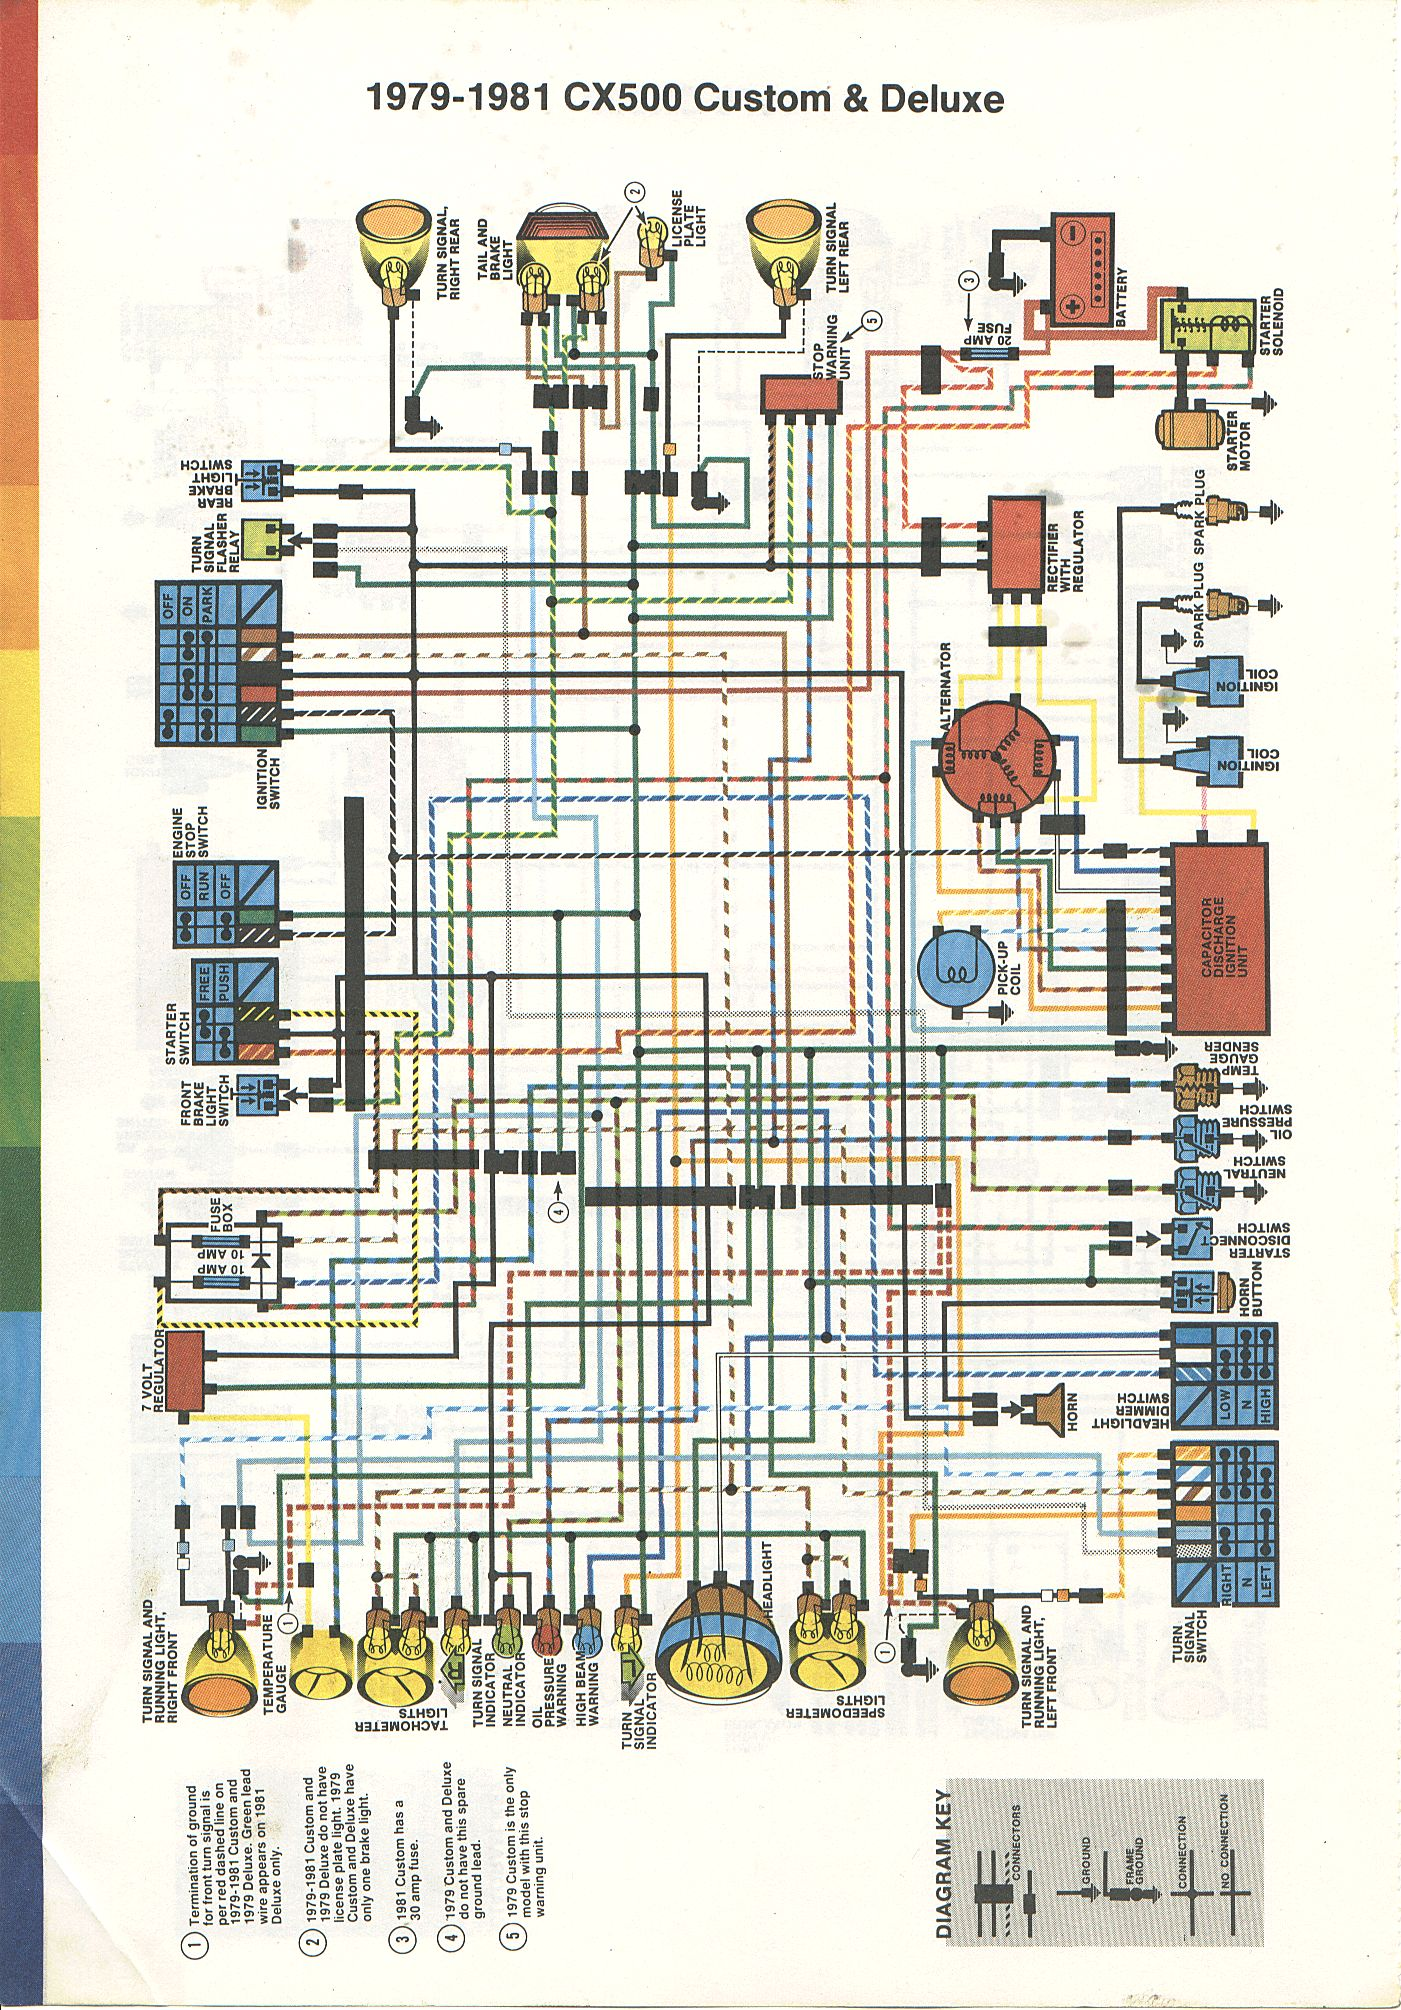 Honda Gl500 Wiring Diagram Circuit Schematic Sl70 Order Of The Knight Other Stuff Page Rh Geocities Ws Tl125